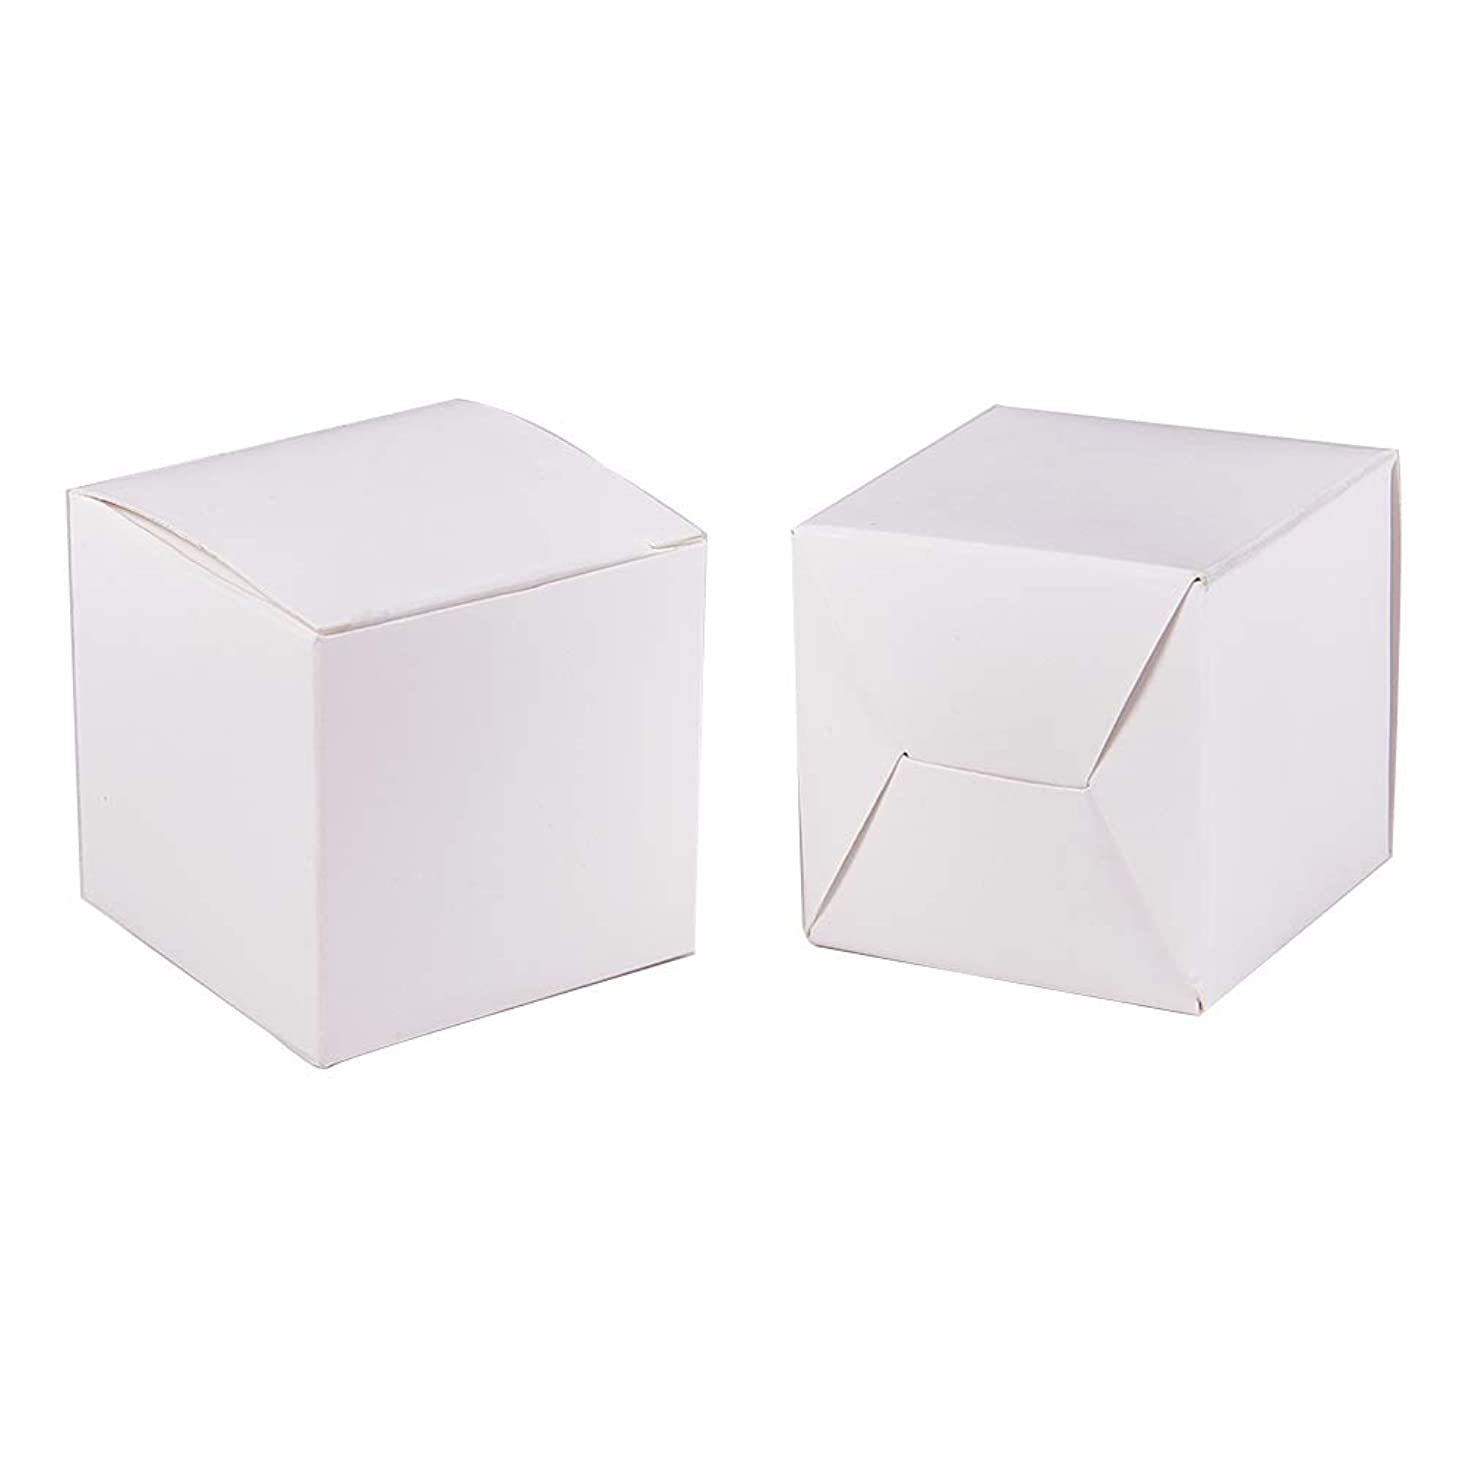 BENECREAT 60PCS Gift Boxes White Paper Boxes Party Favor Boxes 2 x 2 x 2 Inches with Lids for Gift Wrapping, Wedding Party Favors jrwqwldmaglnov